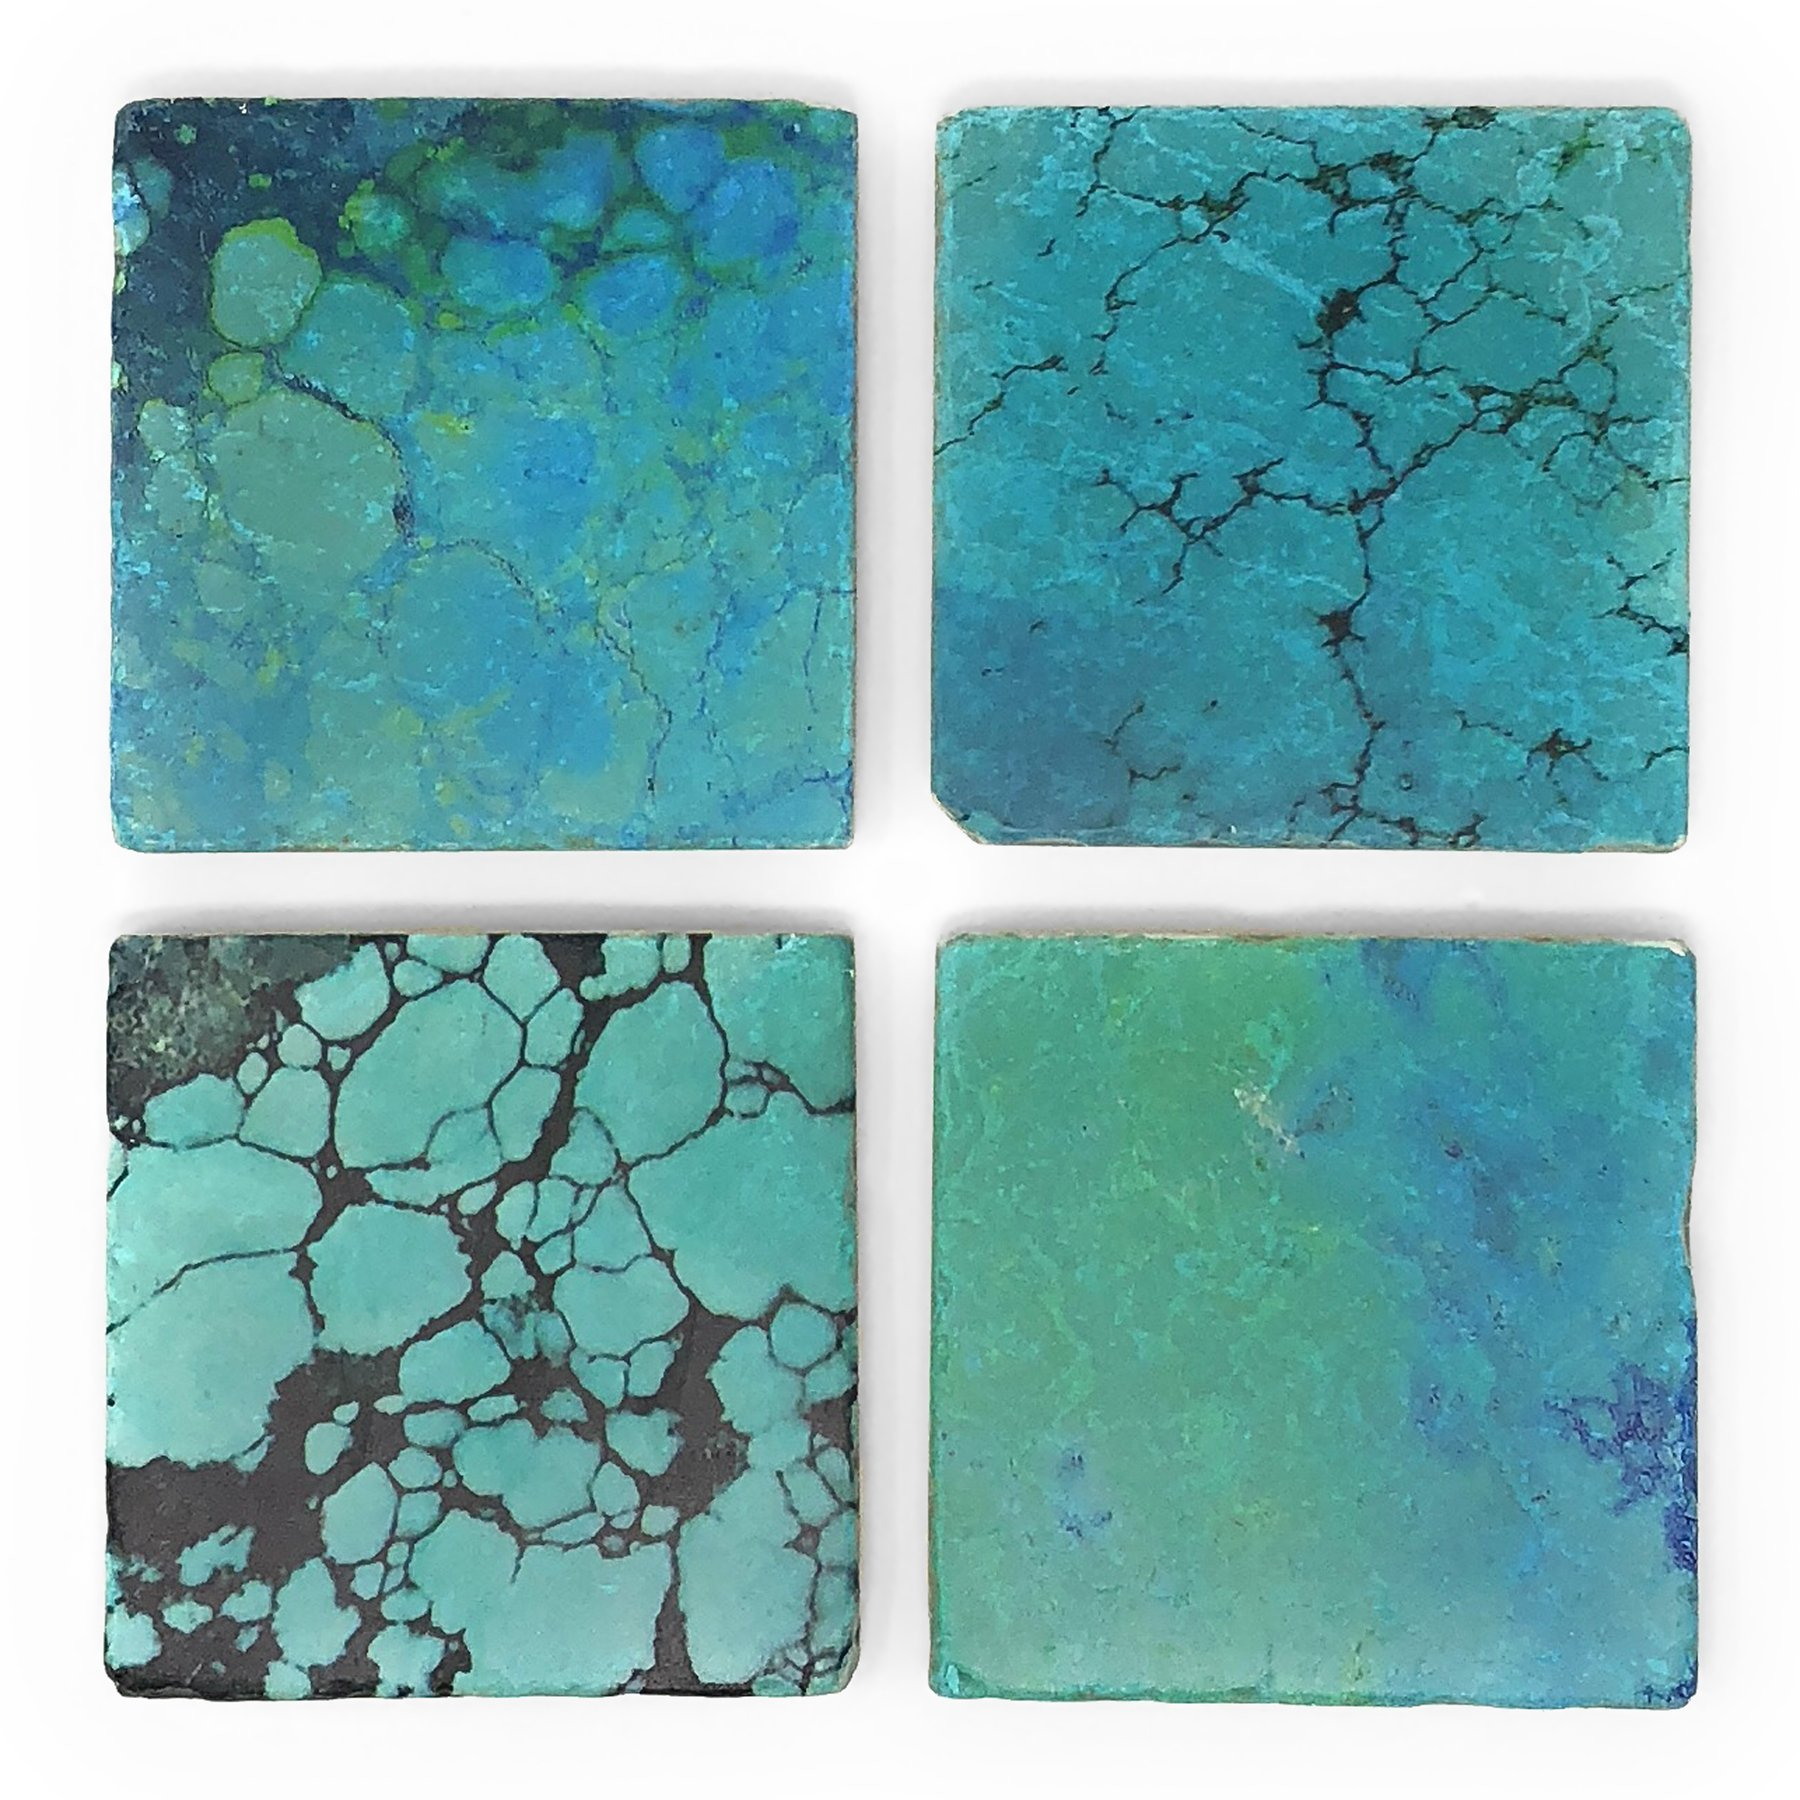 Studio Vertu Turquoise Print Tumbled Marble Coasters, Set of 4